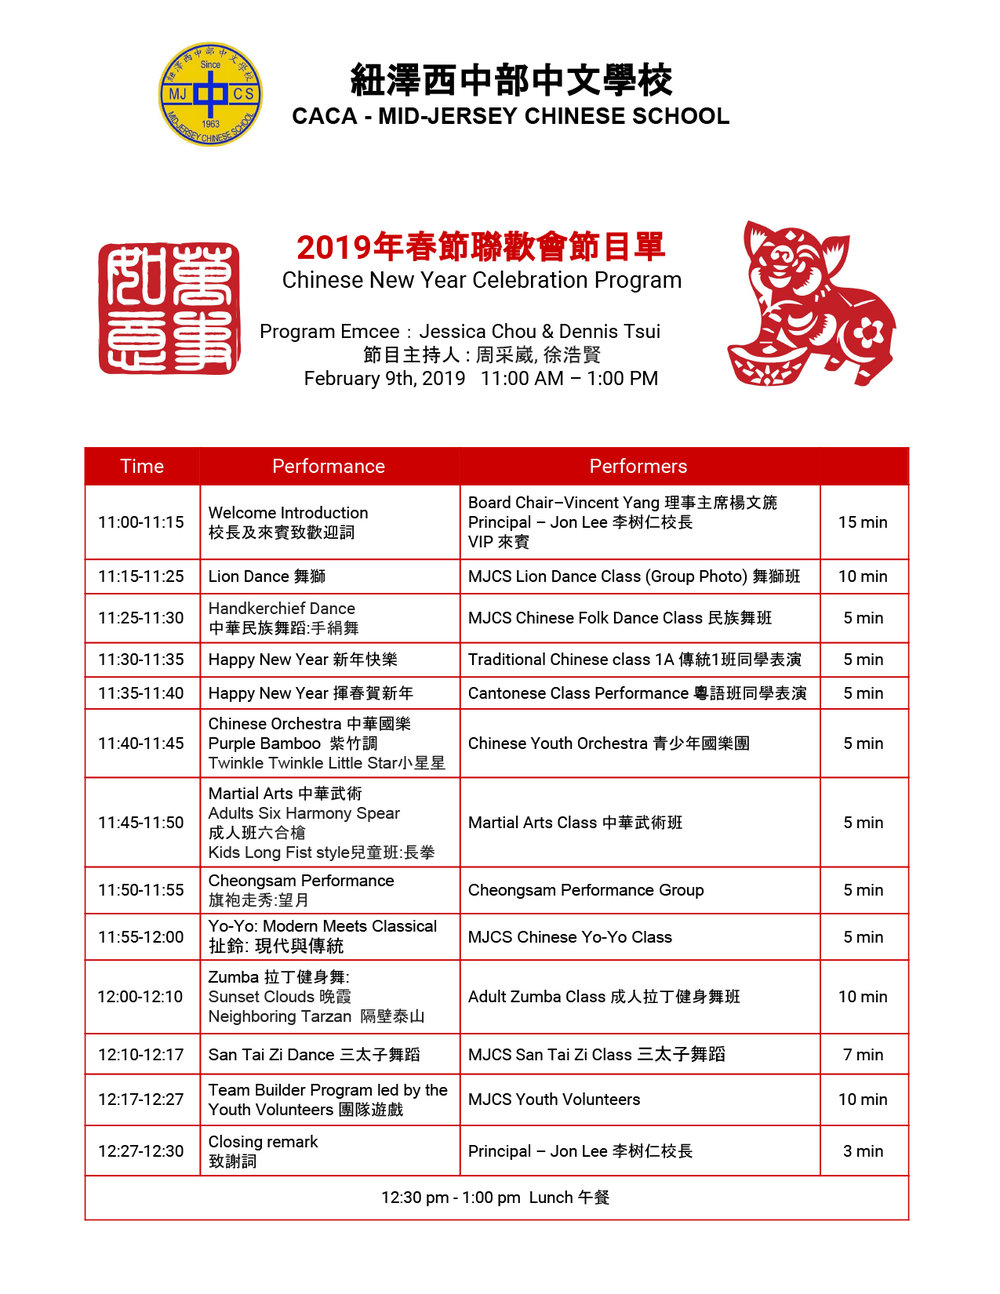 2017 CNY celebration Program.jpg